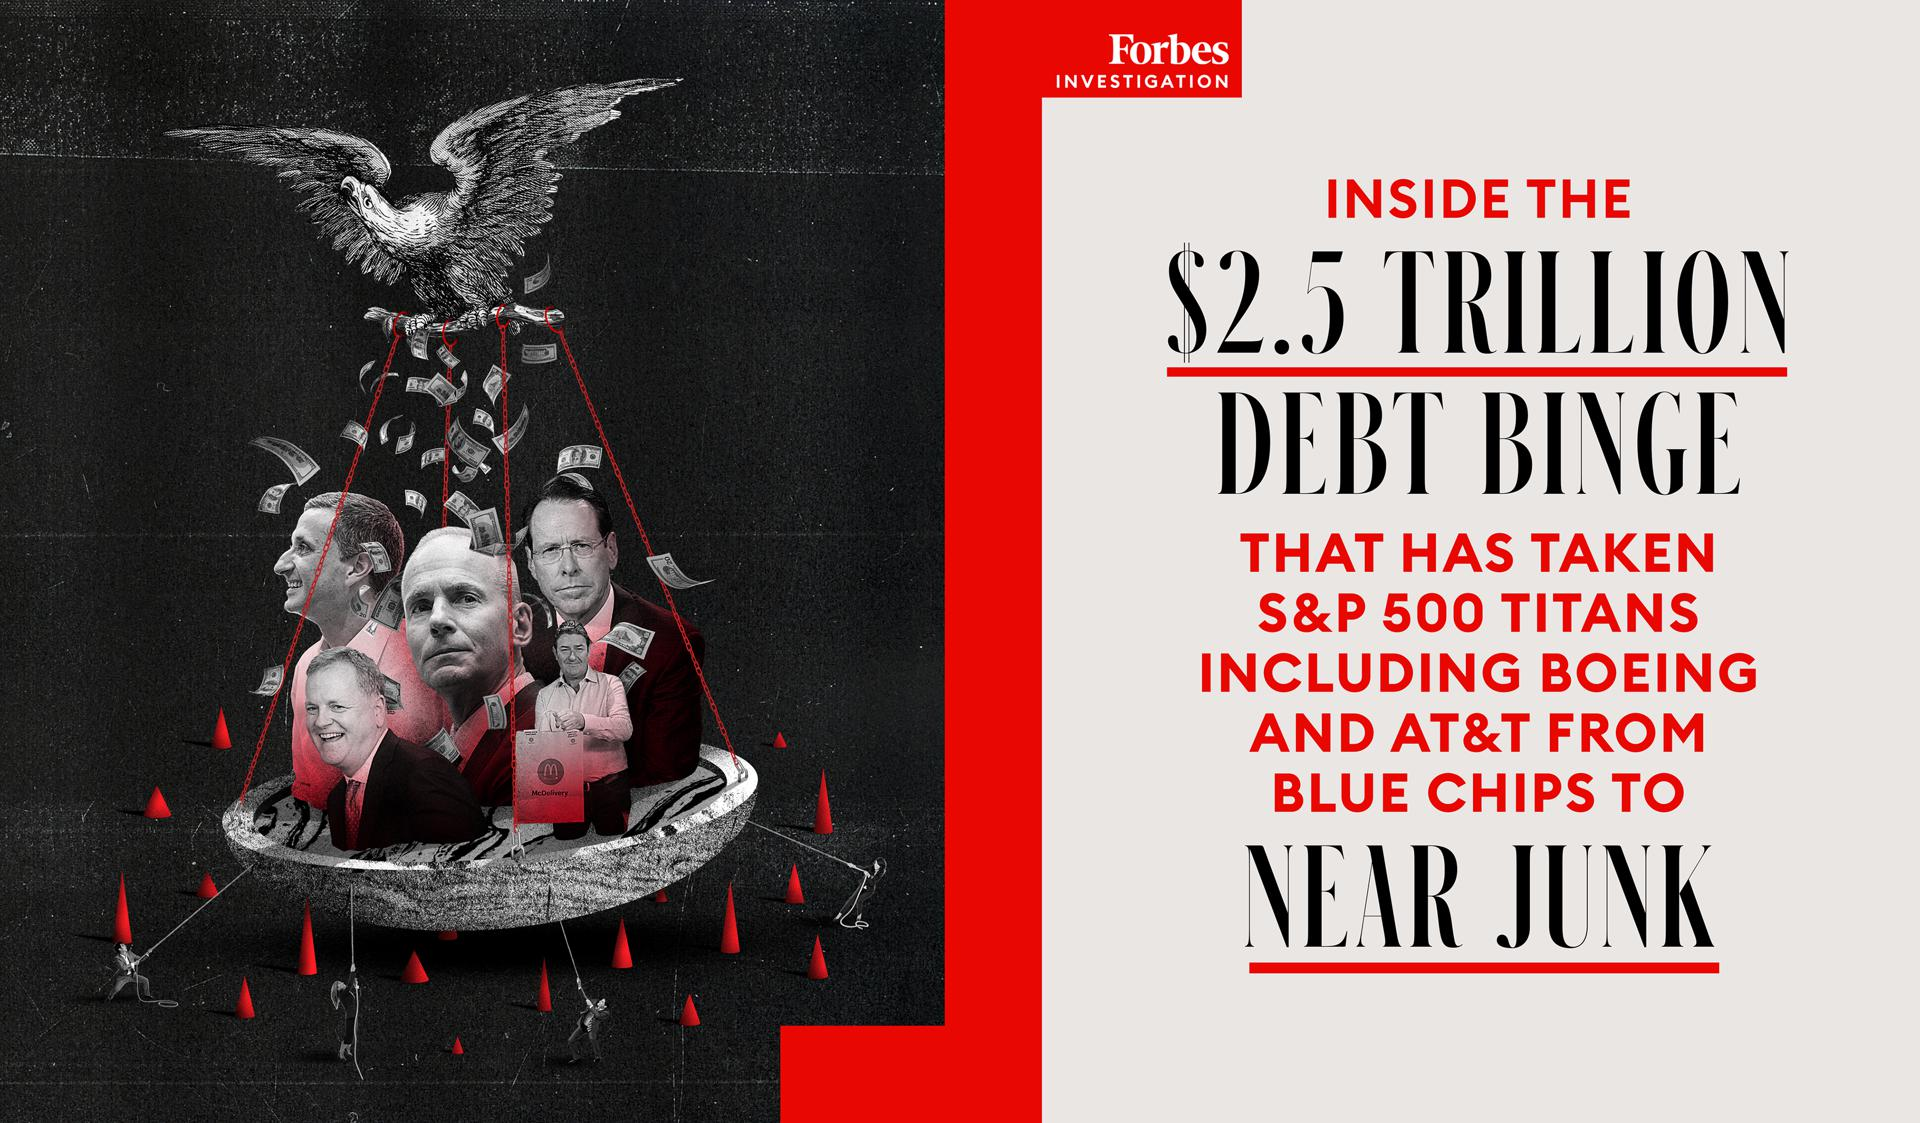 Inside The $2.5 Trillion Debt Binge That Has Taken S&P 500 Titans Including Boeing And AT&T From Blue Chips To Near Junk